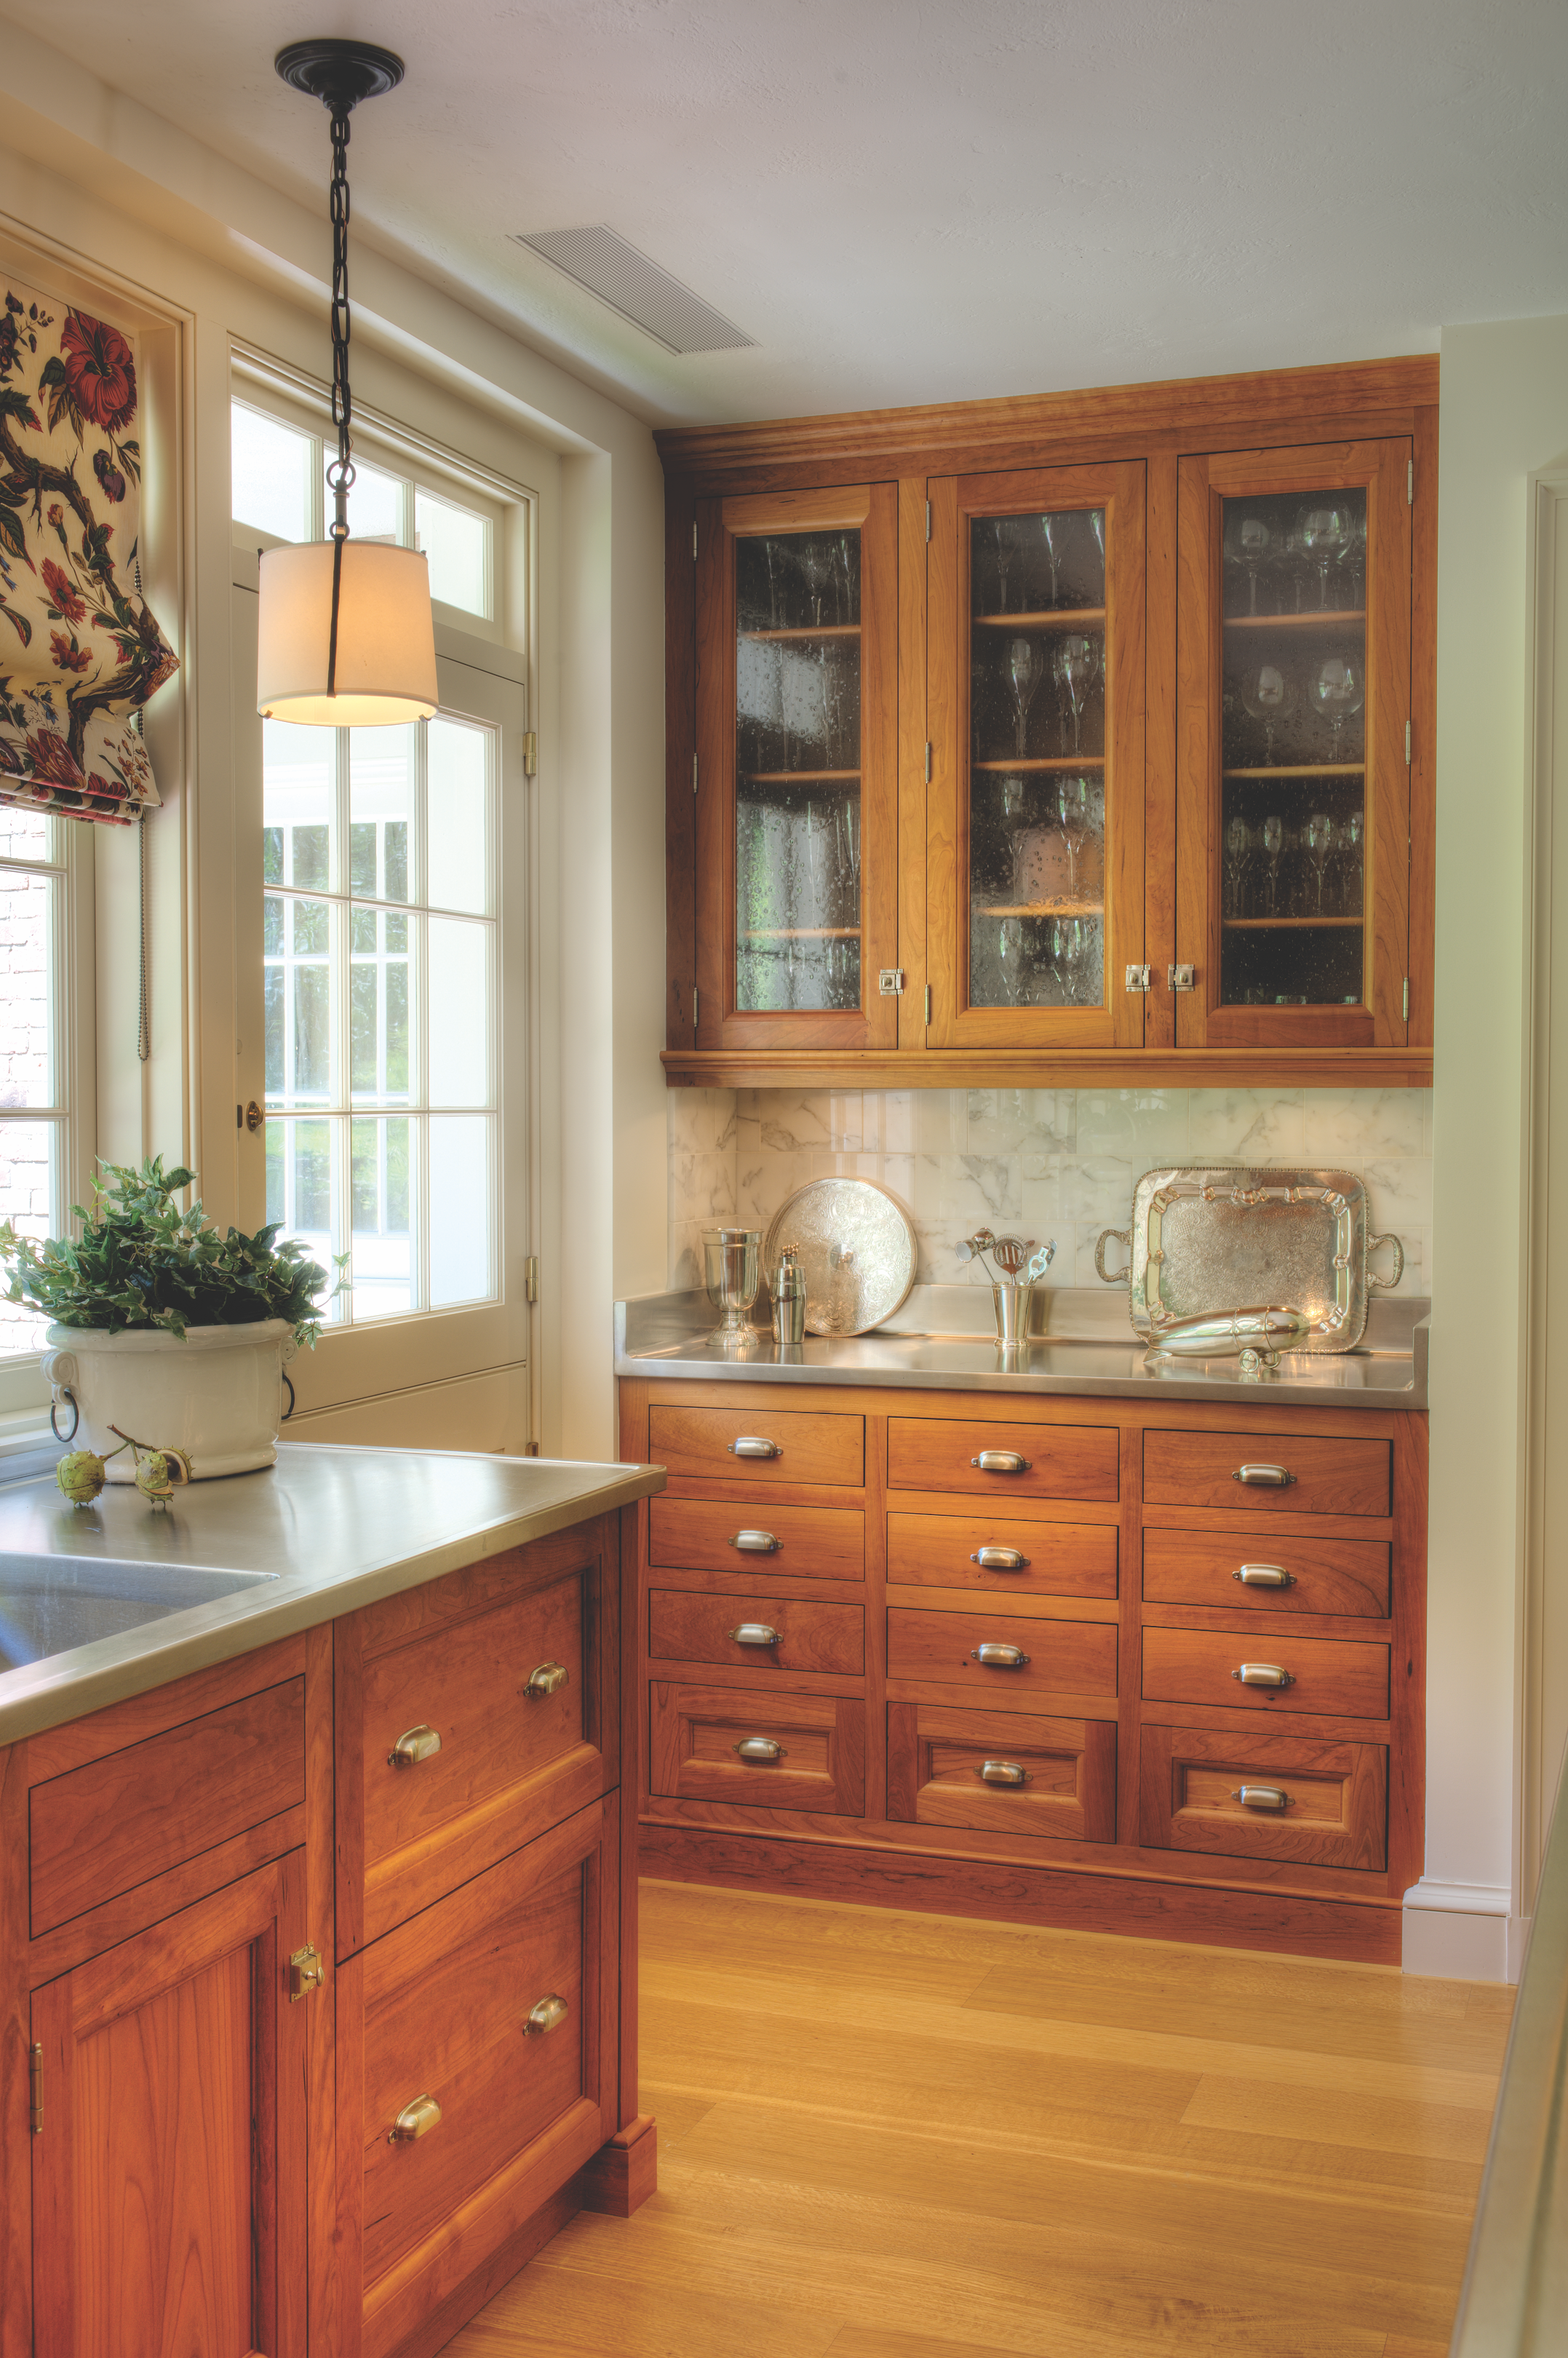 Custom Kitchen Cabinets In 2020 Custom Kitchen Cabinets Small Cottage Kitchen Dining Room Small